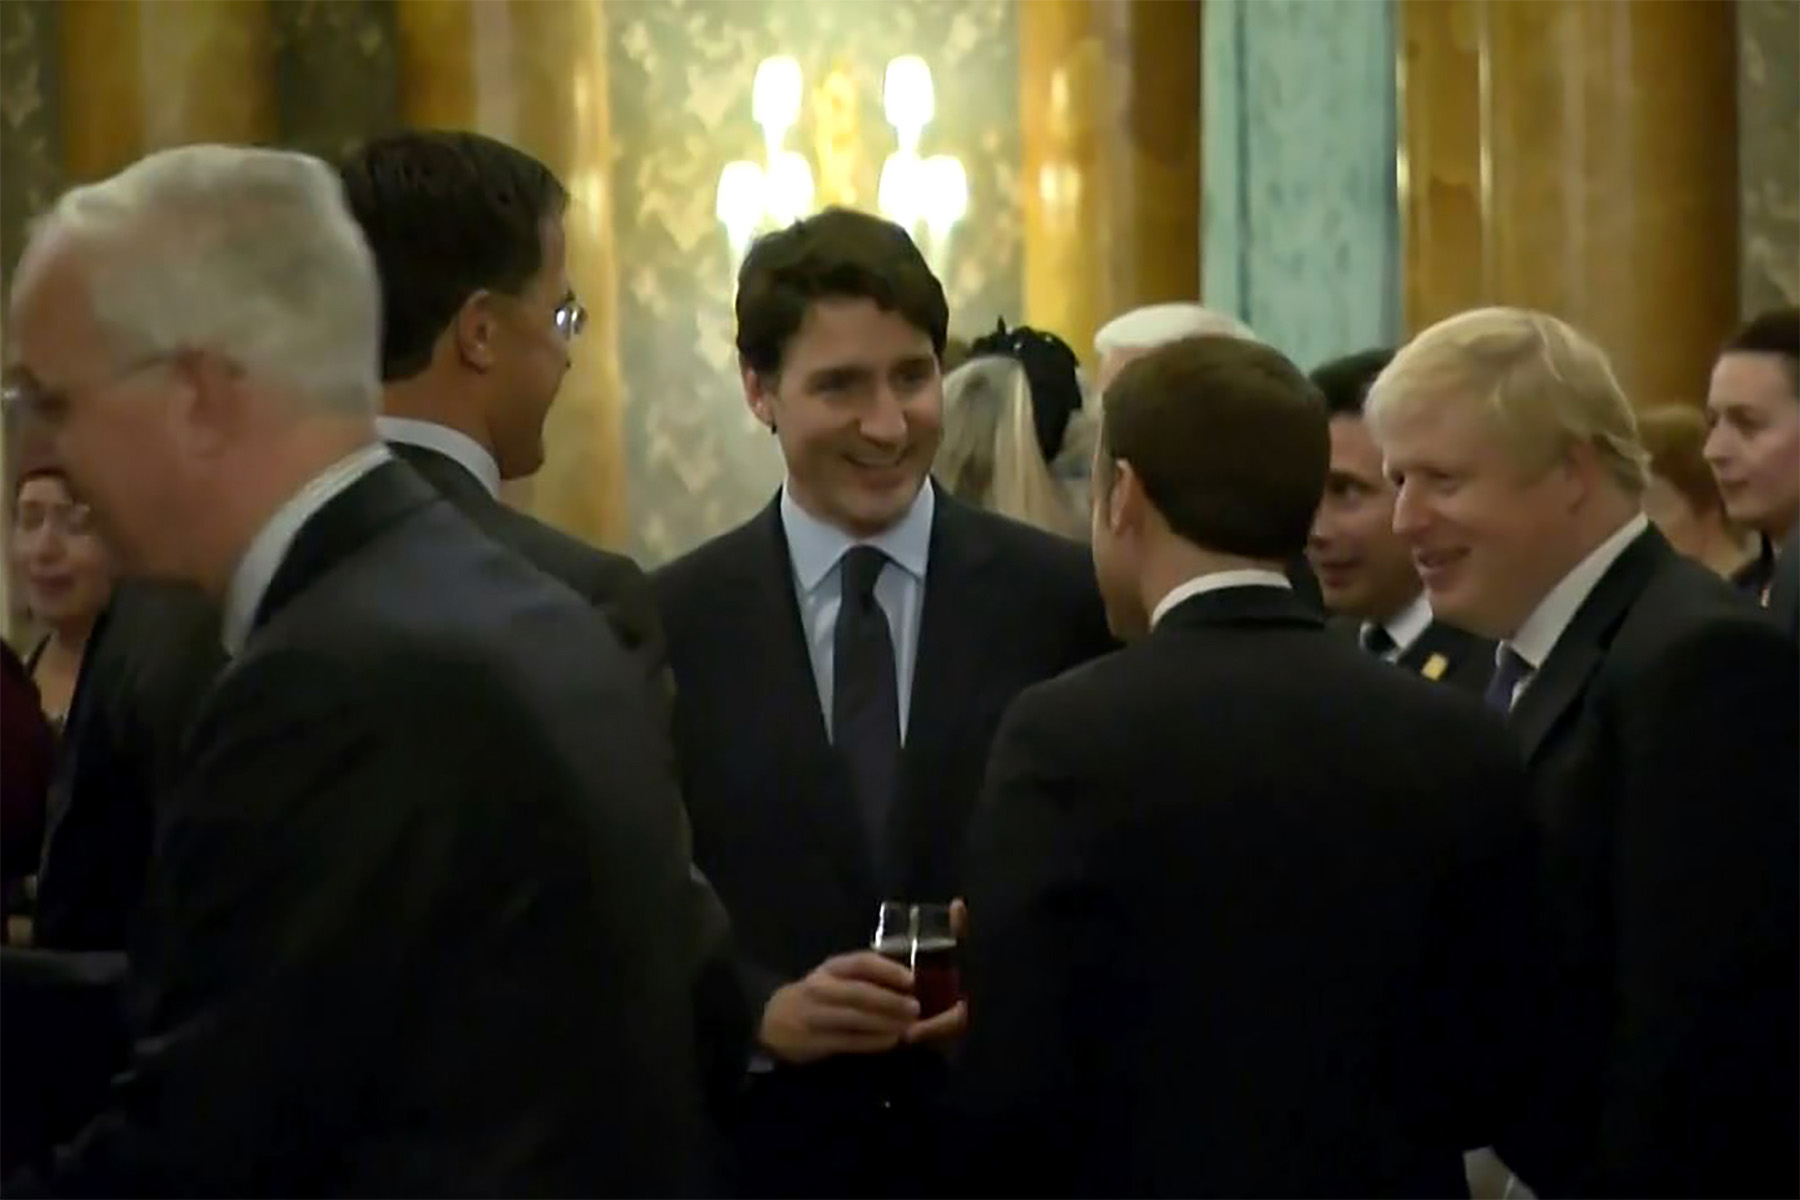 In this grab made from video, Canada's Prime Minister Justin Trudeau  speaks with Dutch Prime Minister Mark Rutte, left, French President Emmanuel Macron, second from right, and British Prime Minister Boris Johnson, right, during an event at a Buckingham Palace on December 3. Photo: NATO TV/AFP via Getty Images